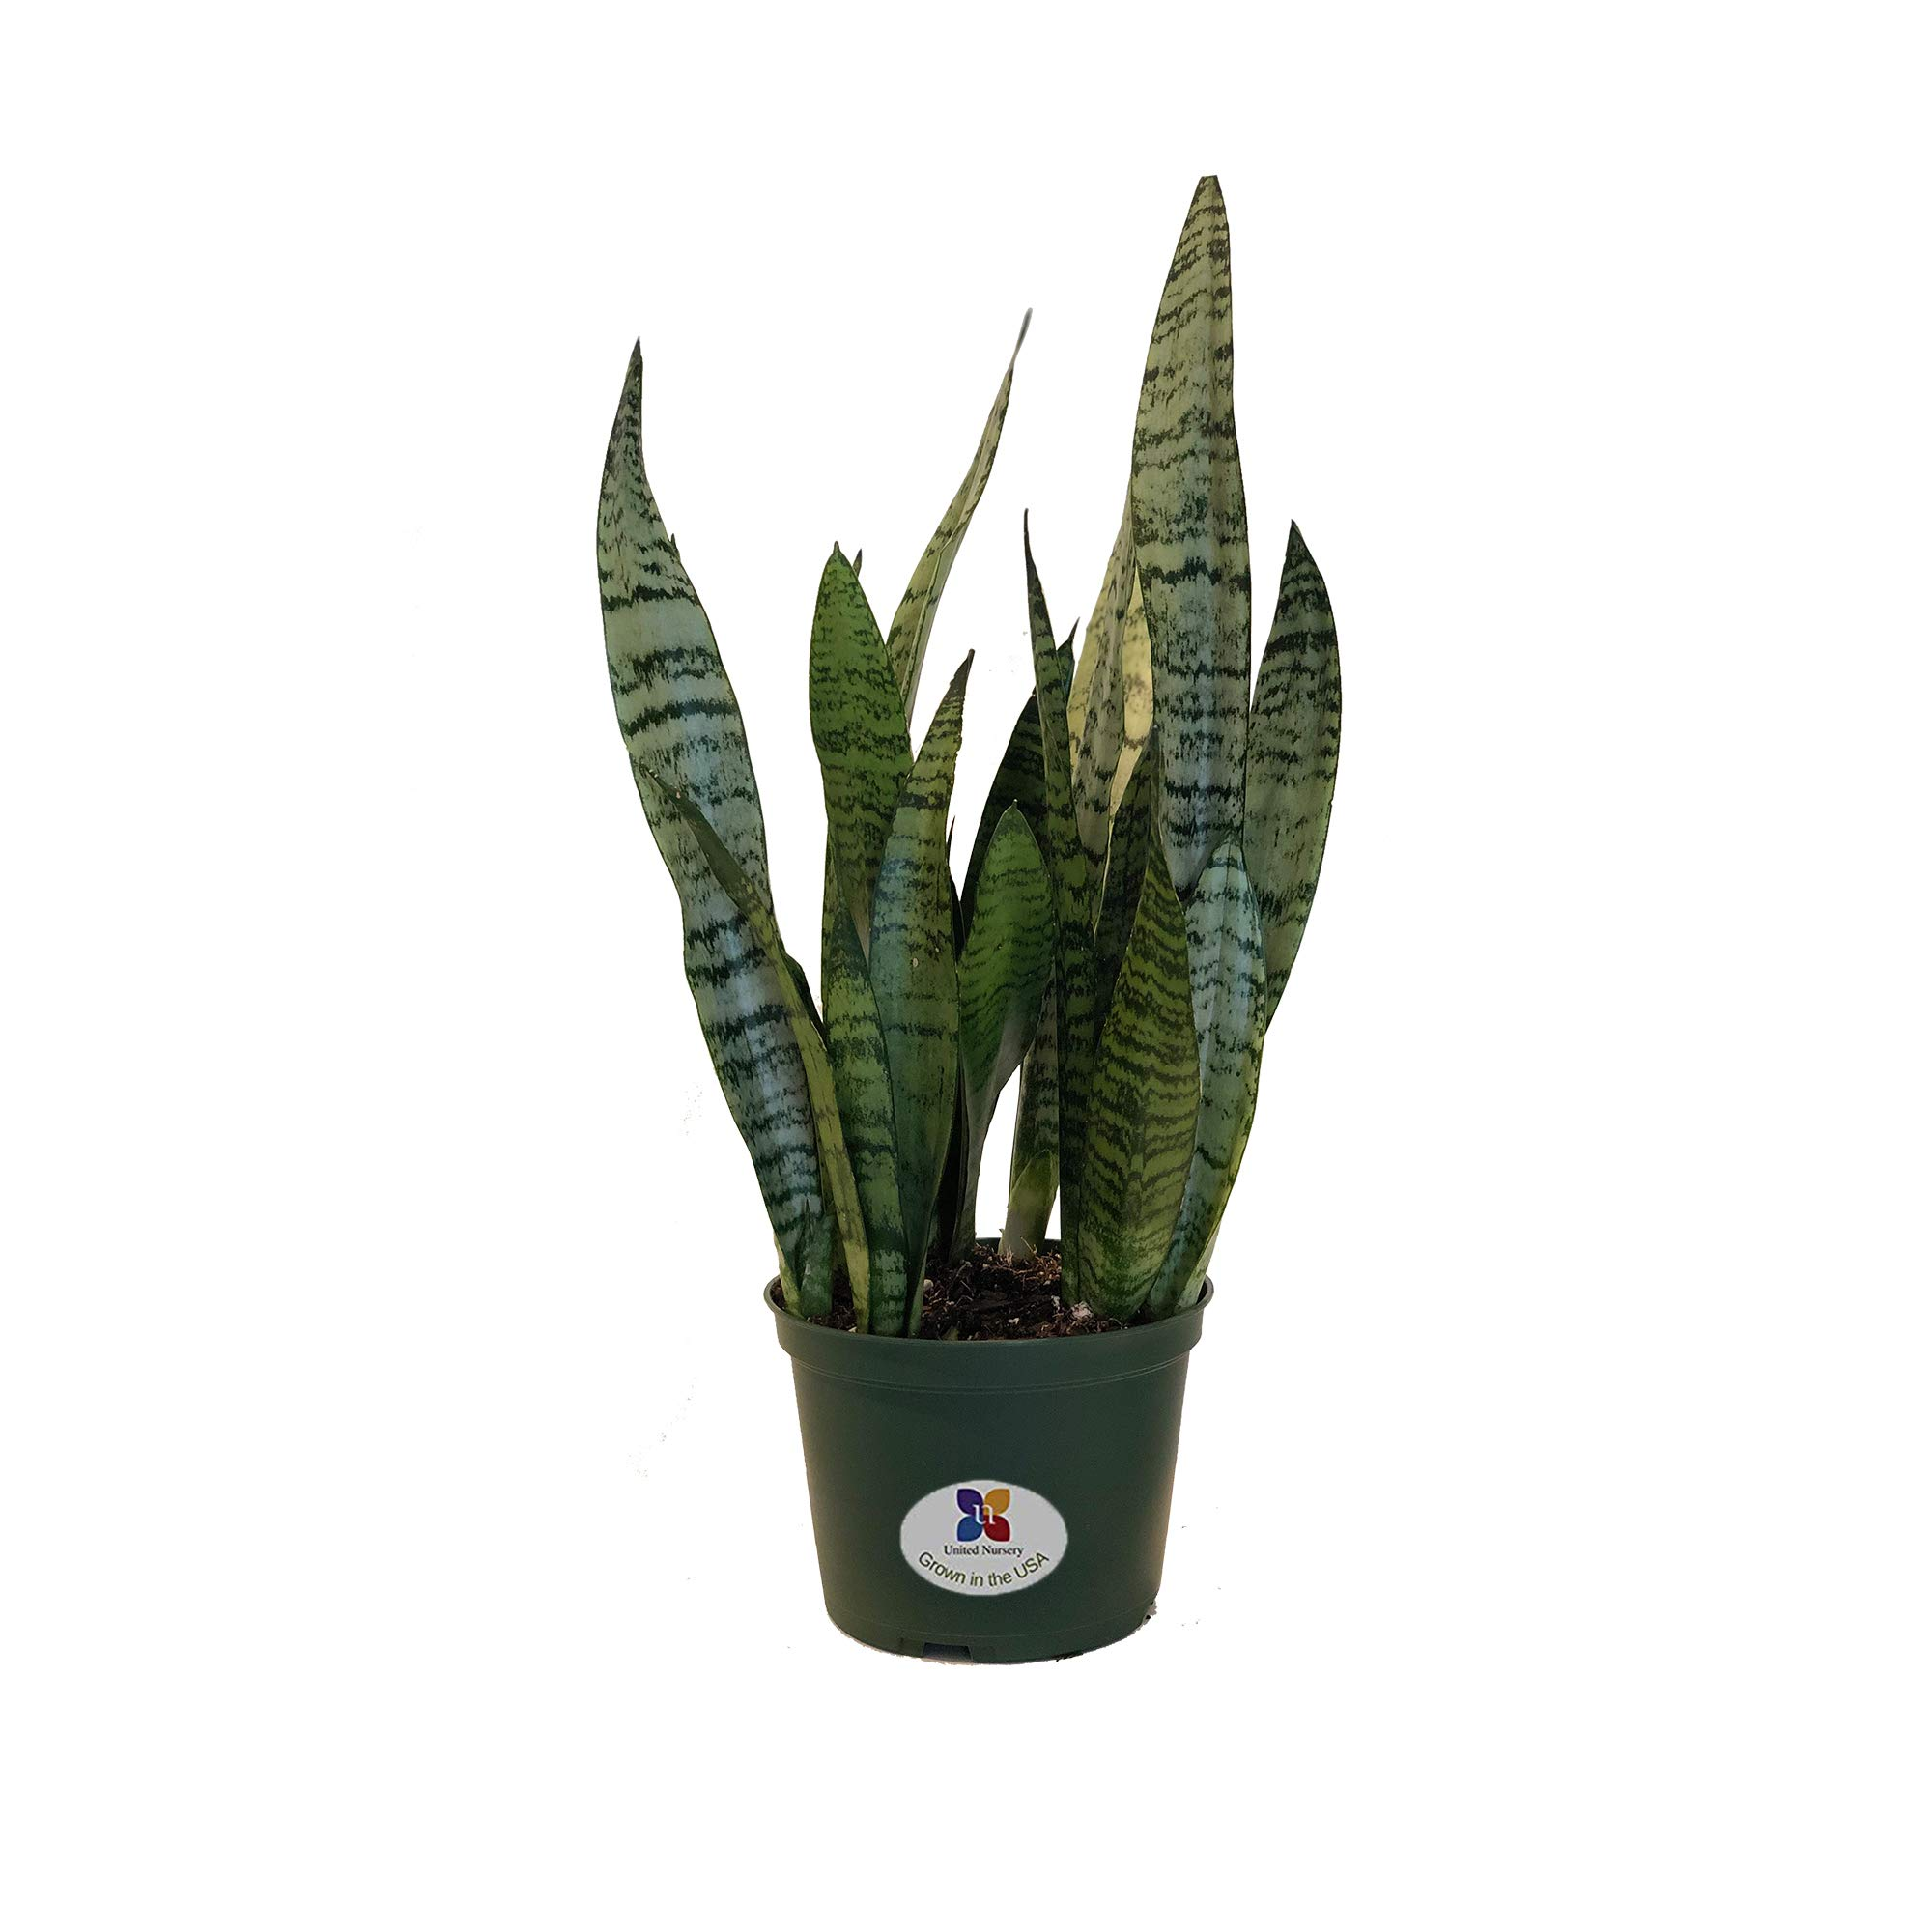 United Nursery Sansevieria Zeylanica Live Indoor Snake Plant Shipped in 6 inch Grower Pot 18-22 inch Shipping Size